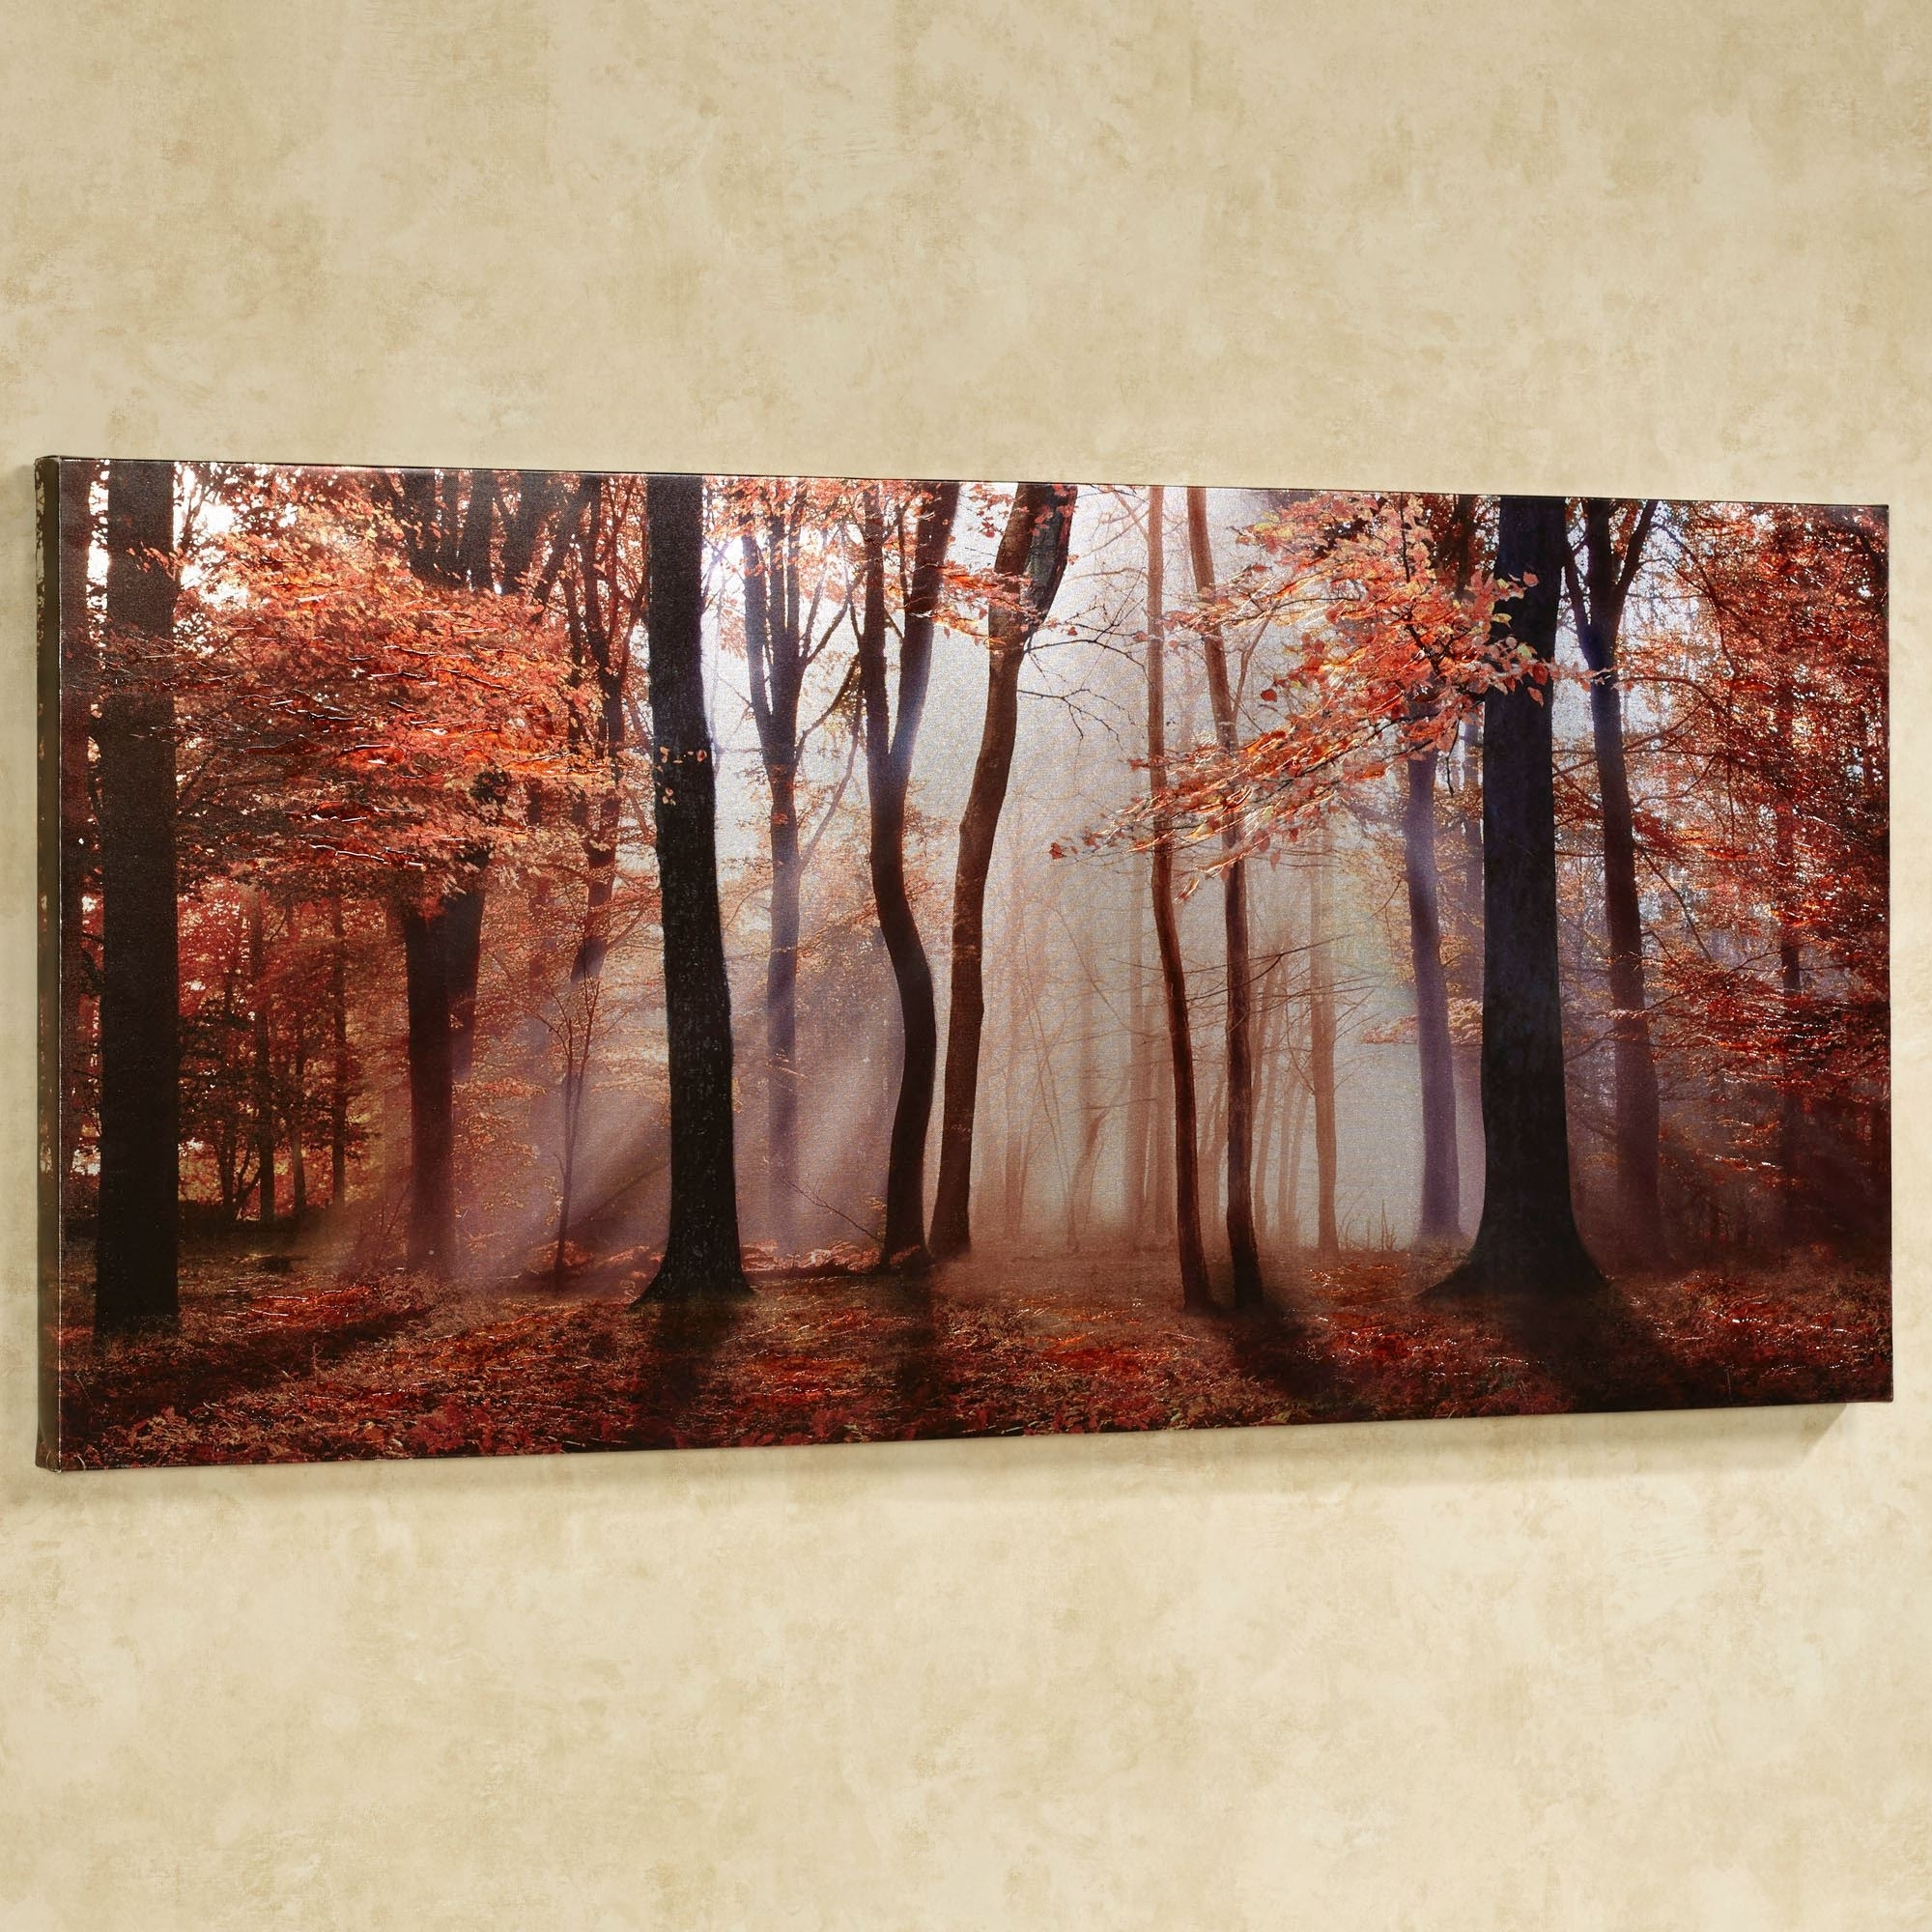 Canvas Wall Art Intended For Trendy Autumns Allure Giclee Canvas Wall Art (Gallery 1 of 15)